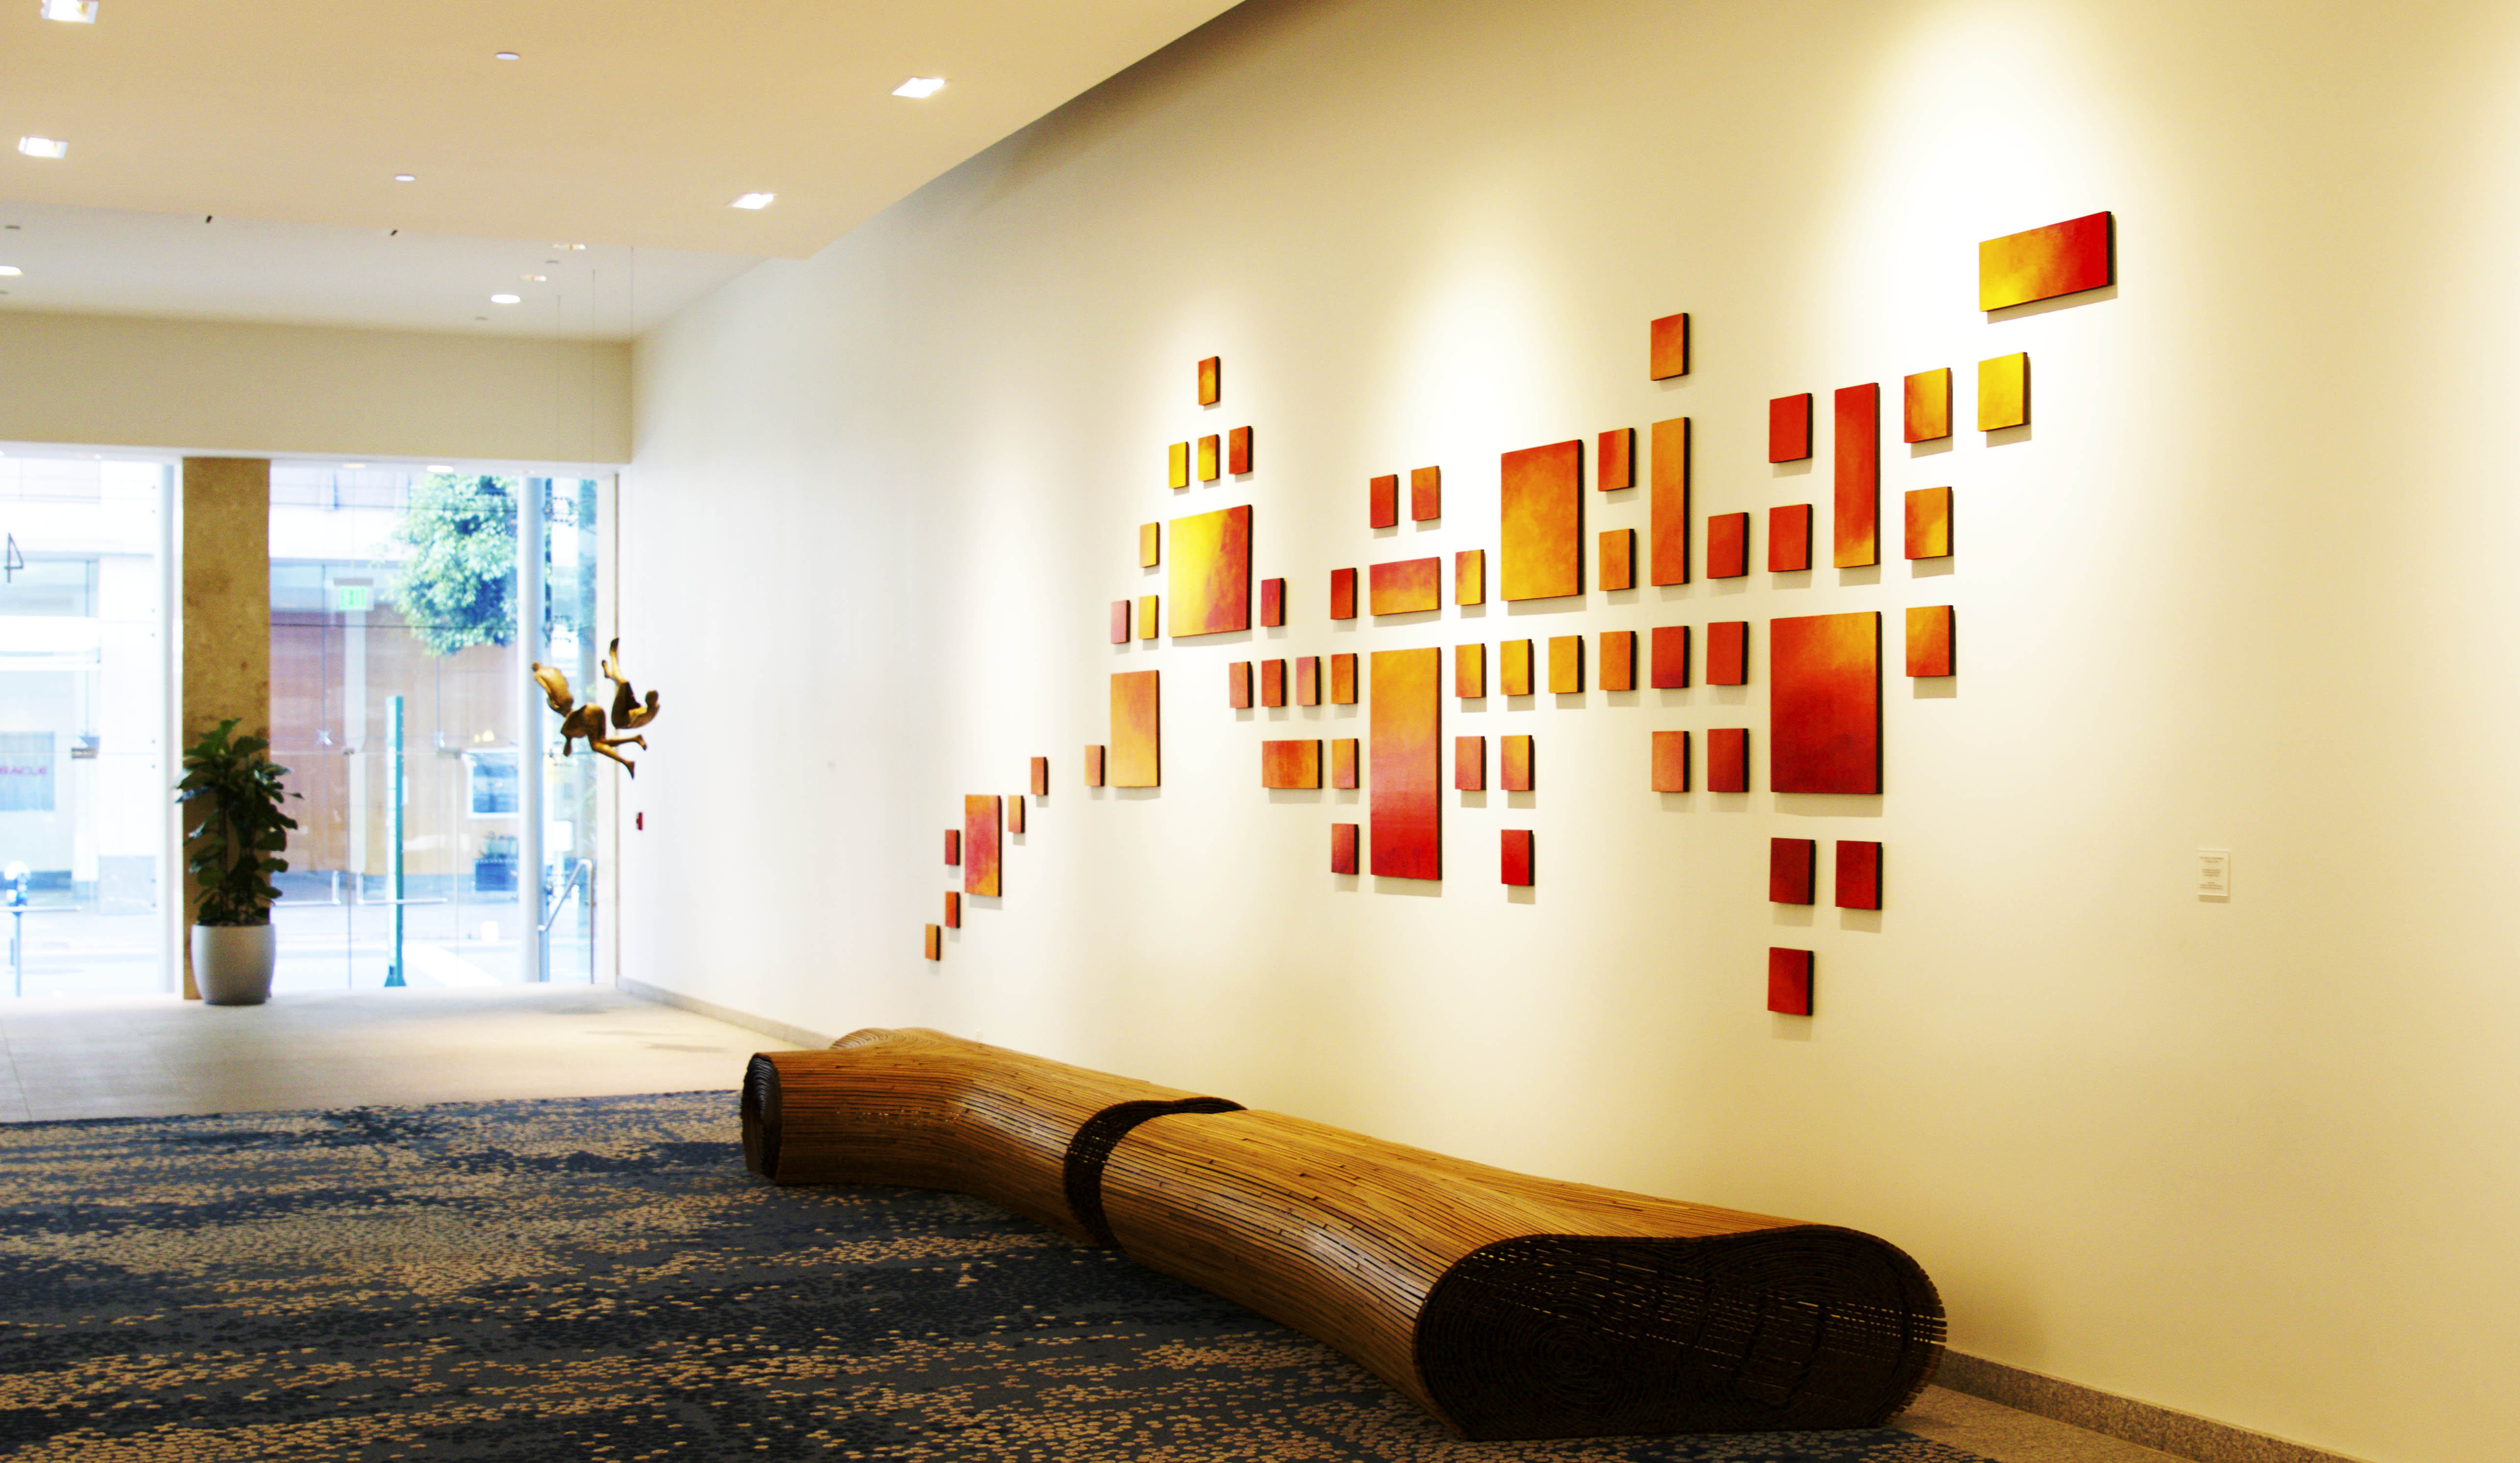 Rosemary Pierce Modern Art | Original Wall Sculpture Art Installations